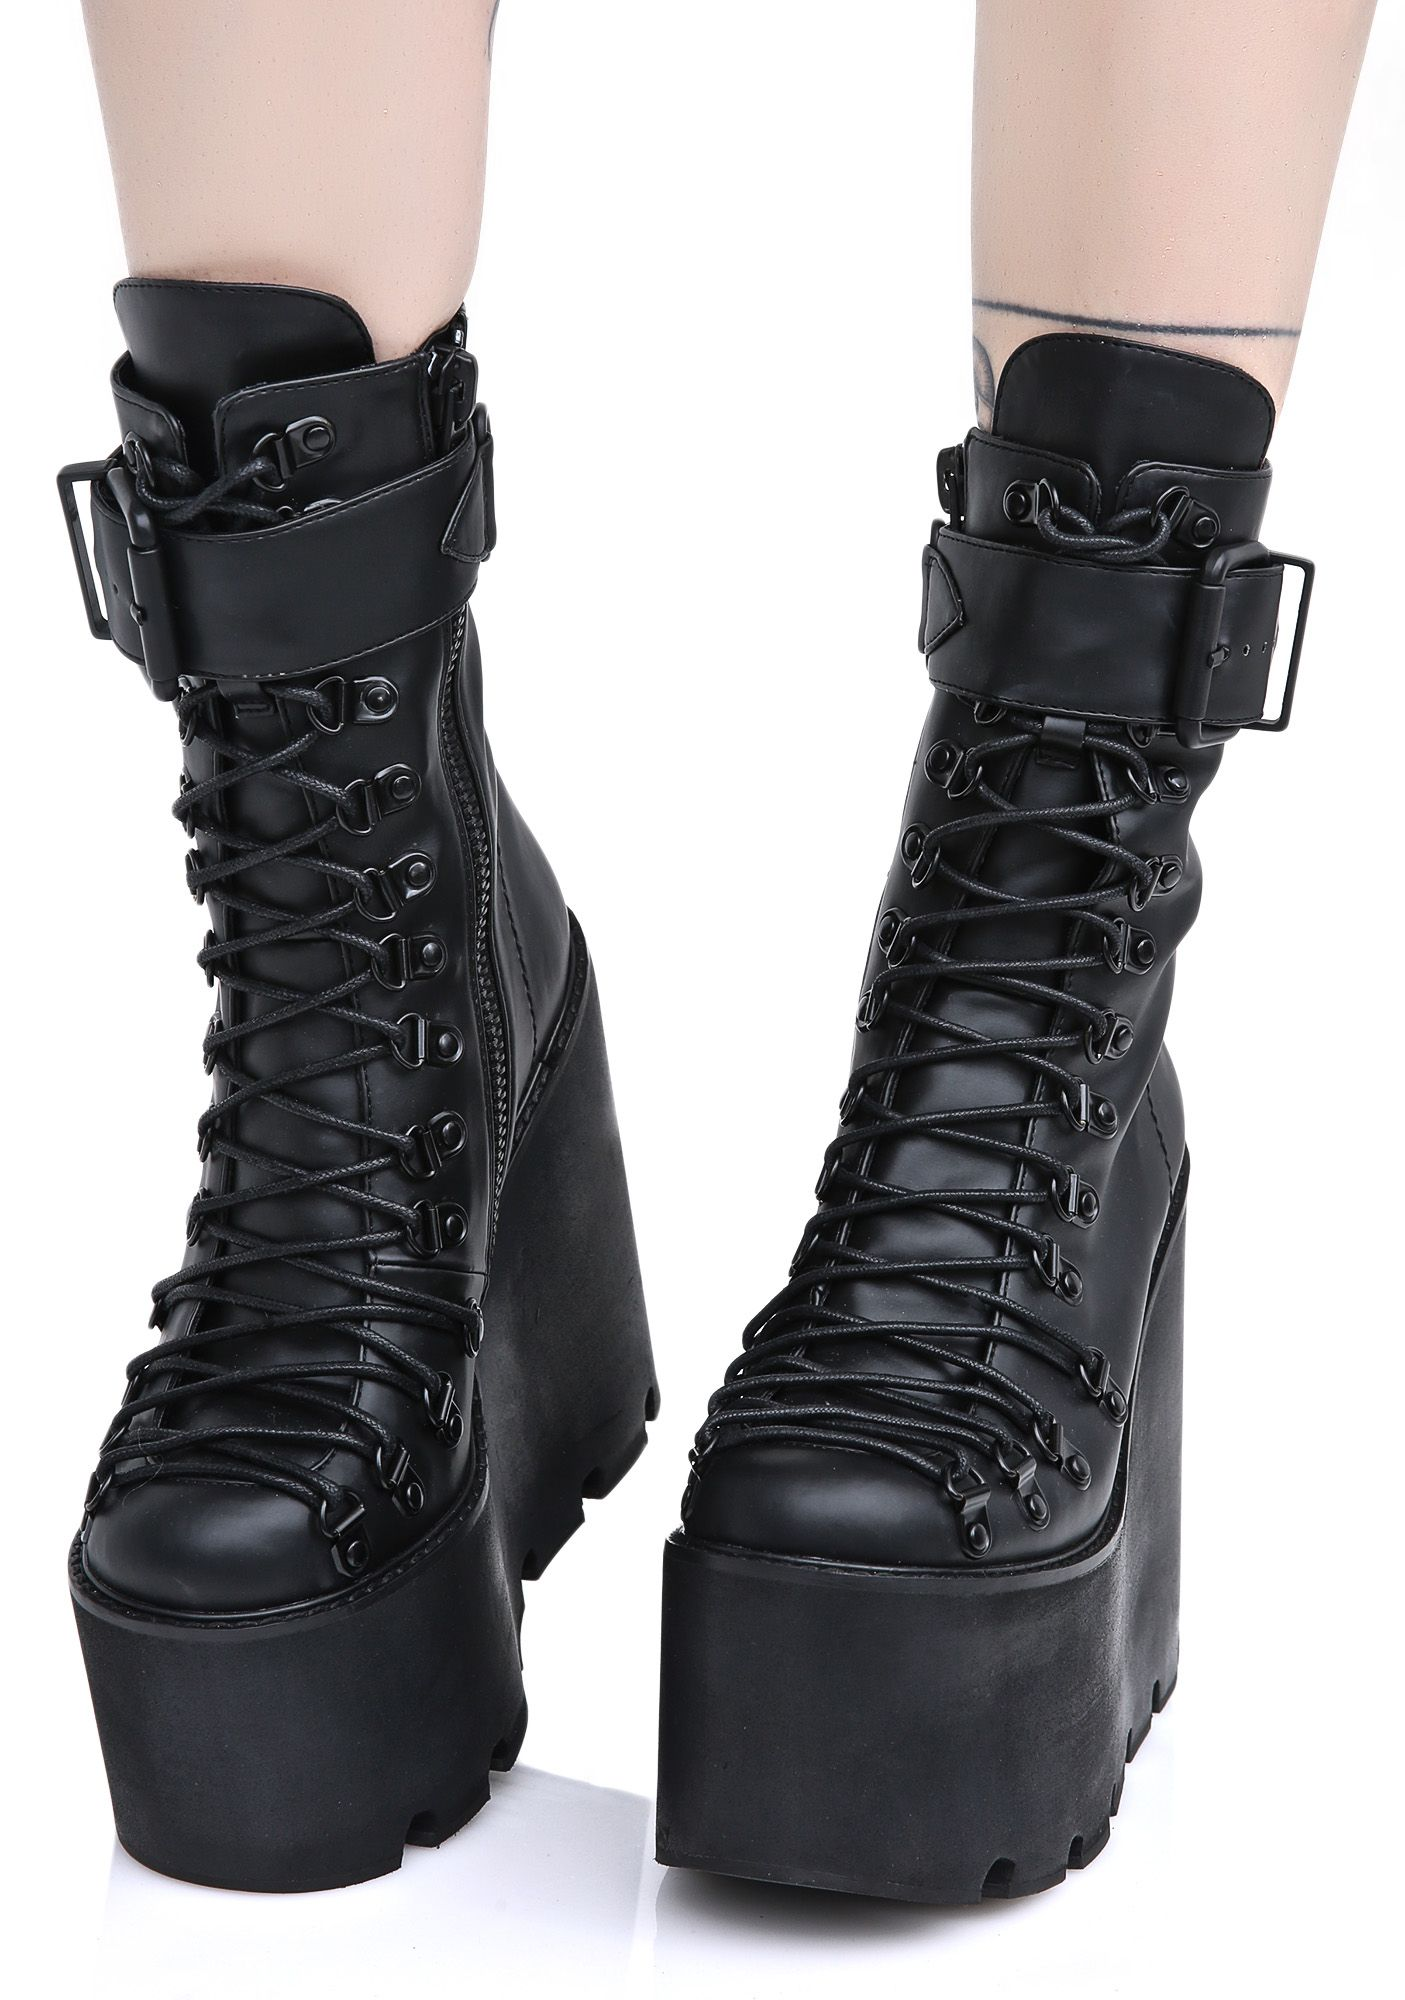 abcc9699e994 Current Mood Traitor Boots  gothboots